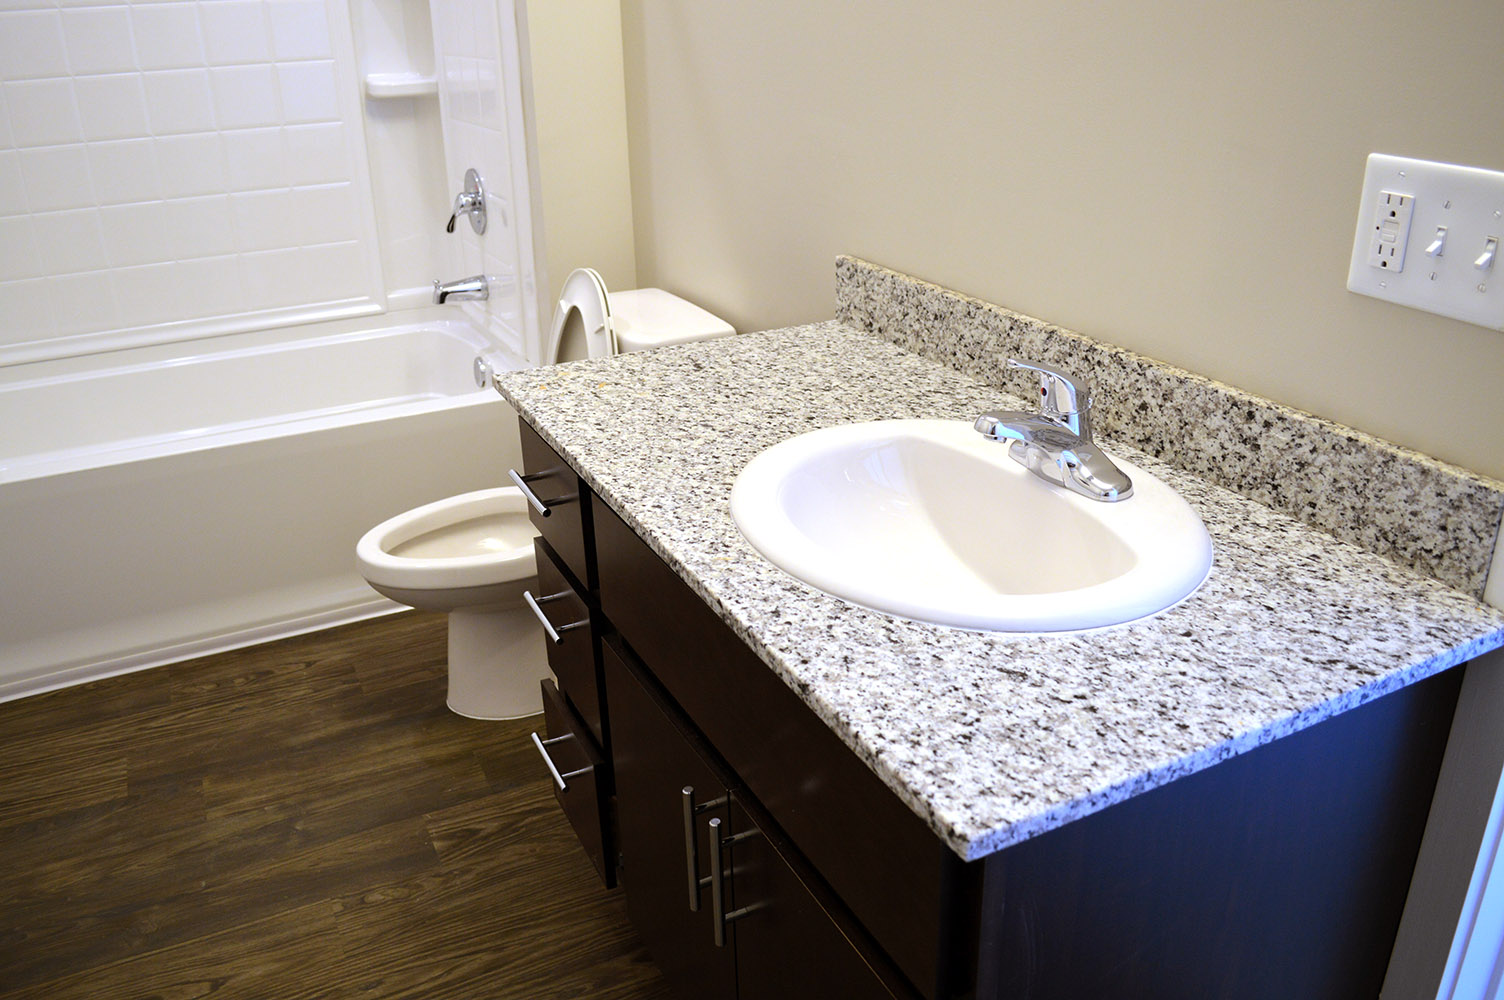 Bringing the same neat and clean feel from the granite countertops in the kitchen area to the bathroom vanities